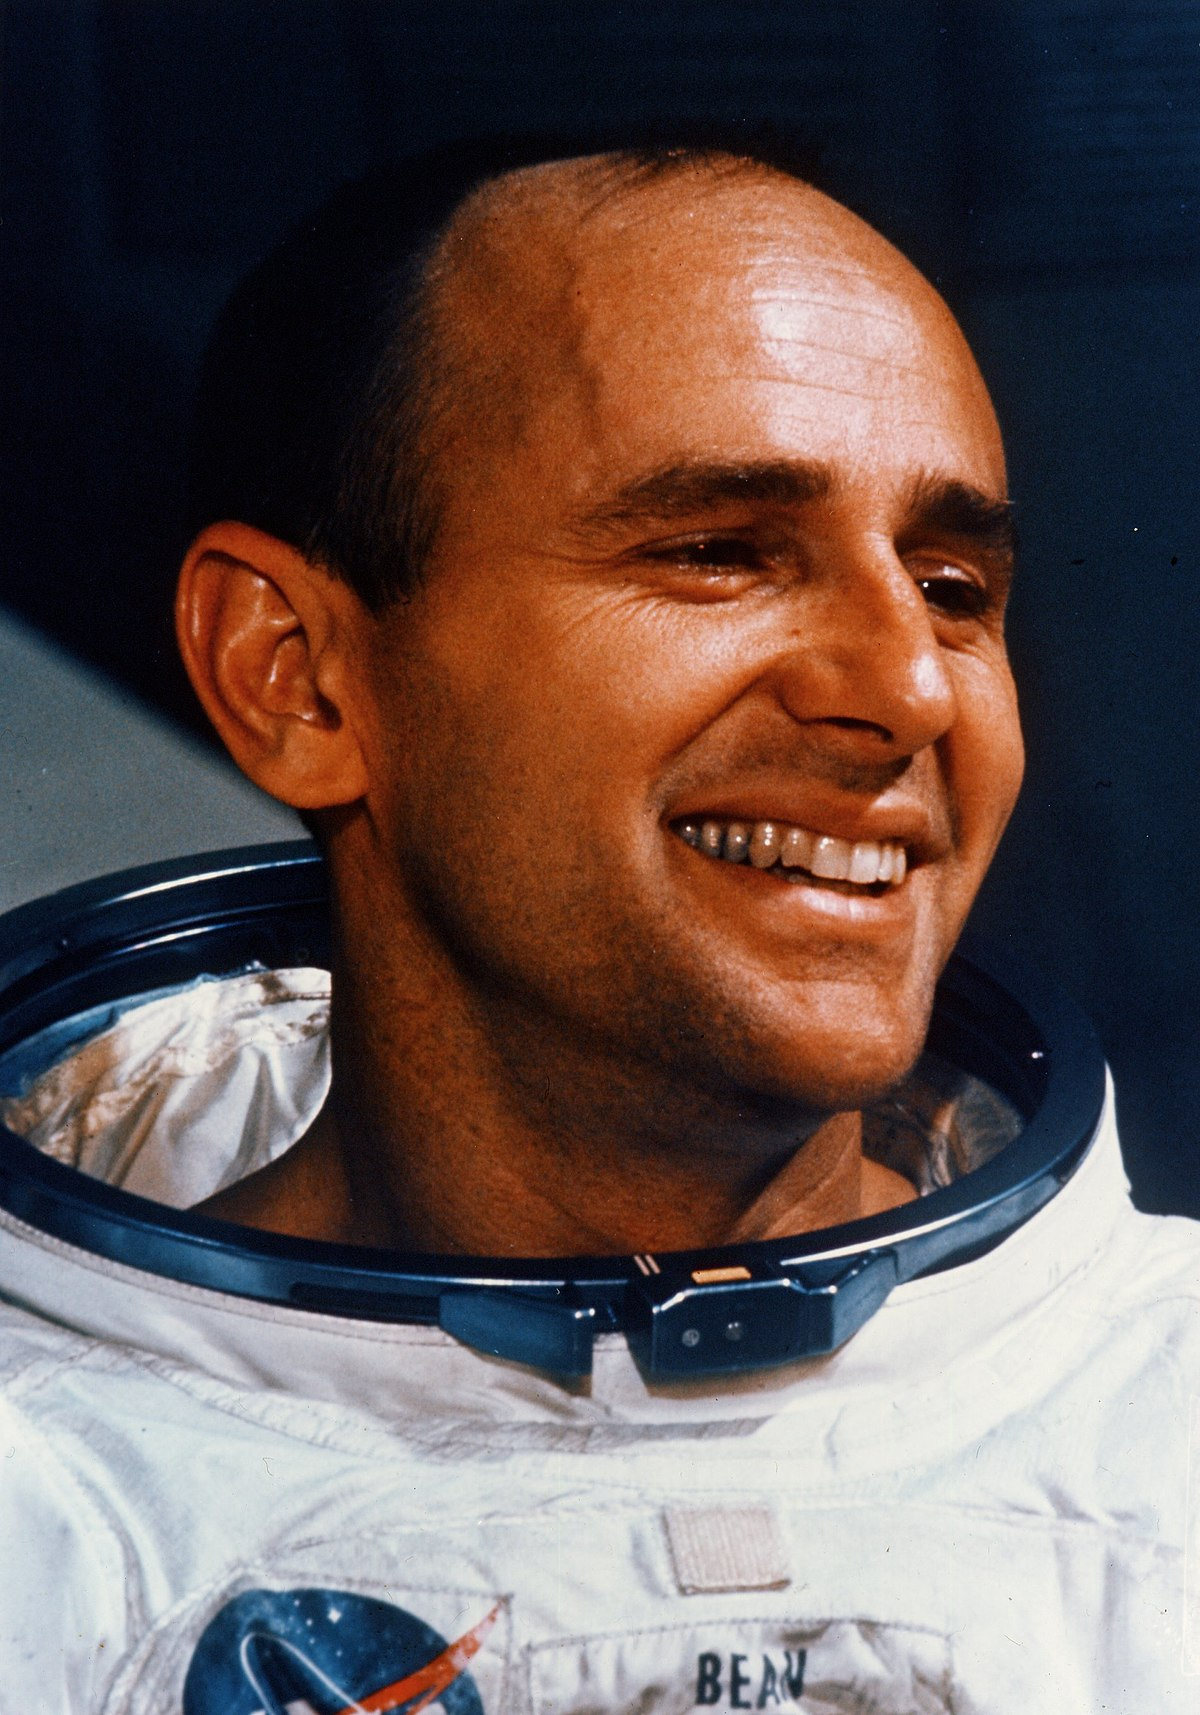 Alan Bean - Wikipedia